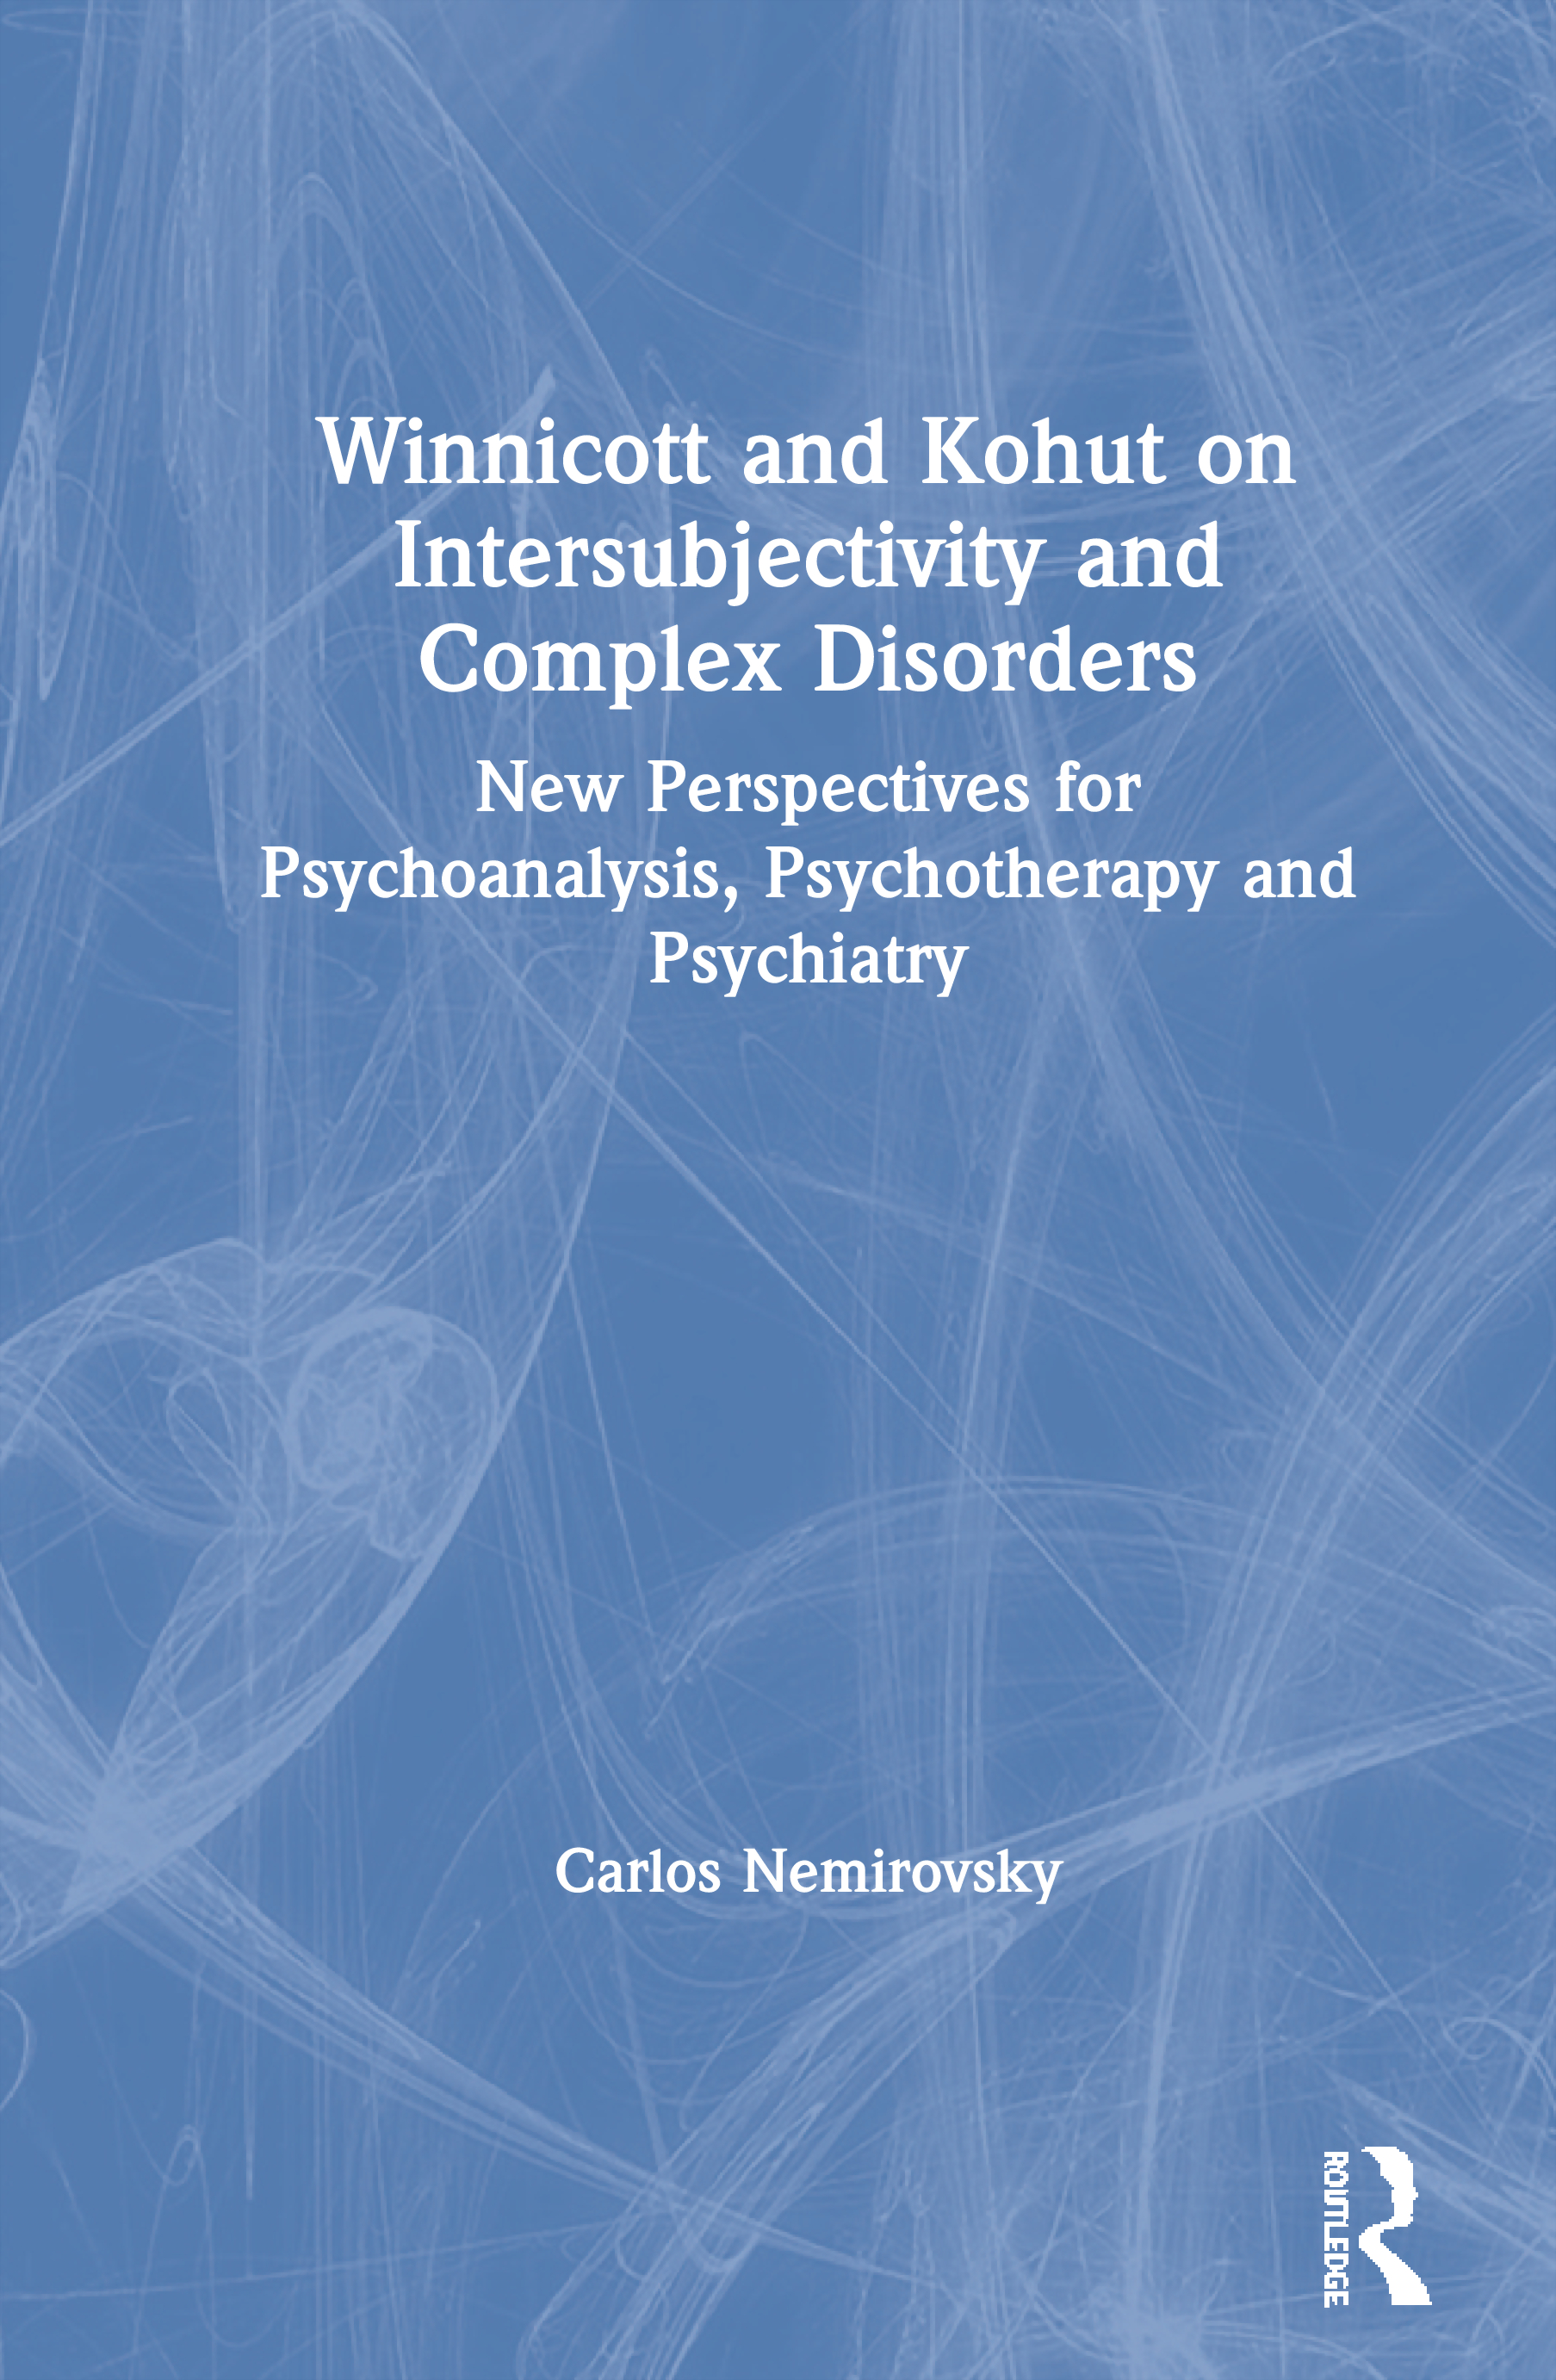 Winnicott and Kohut on Intersubjectivity and Complex Disorders: New Perspectives for Psychoanalysis, Psychotherapy and Psychiatry, 1st Edition (Paperback) book cover